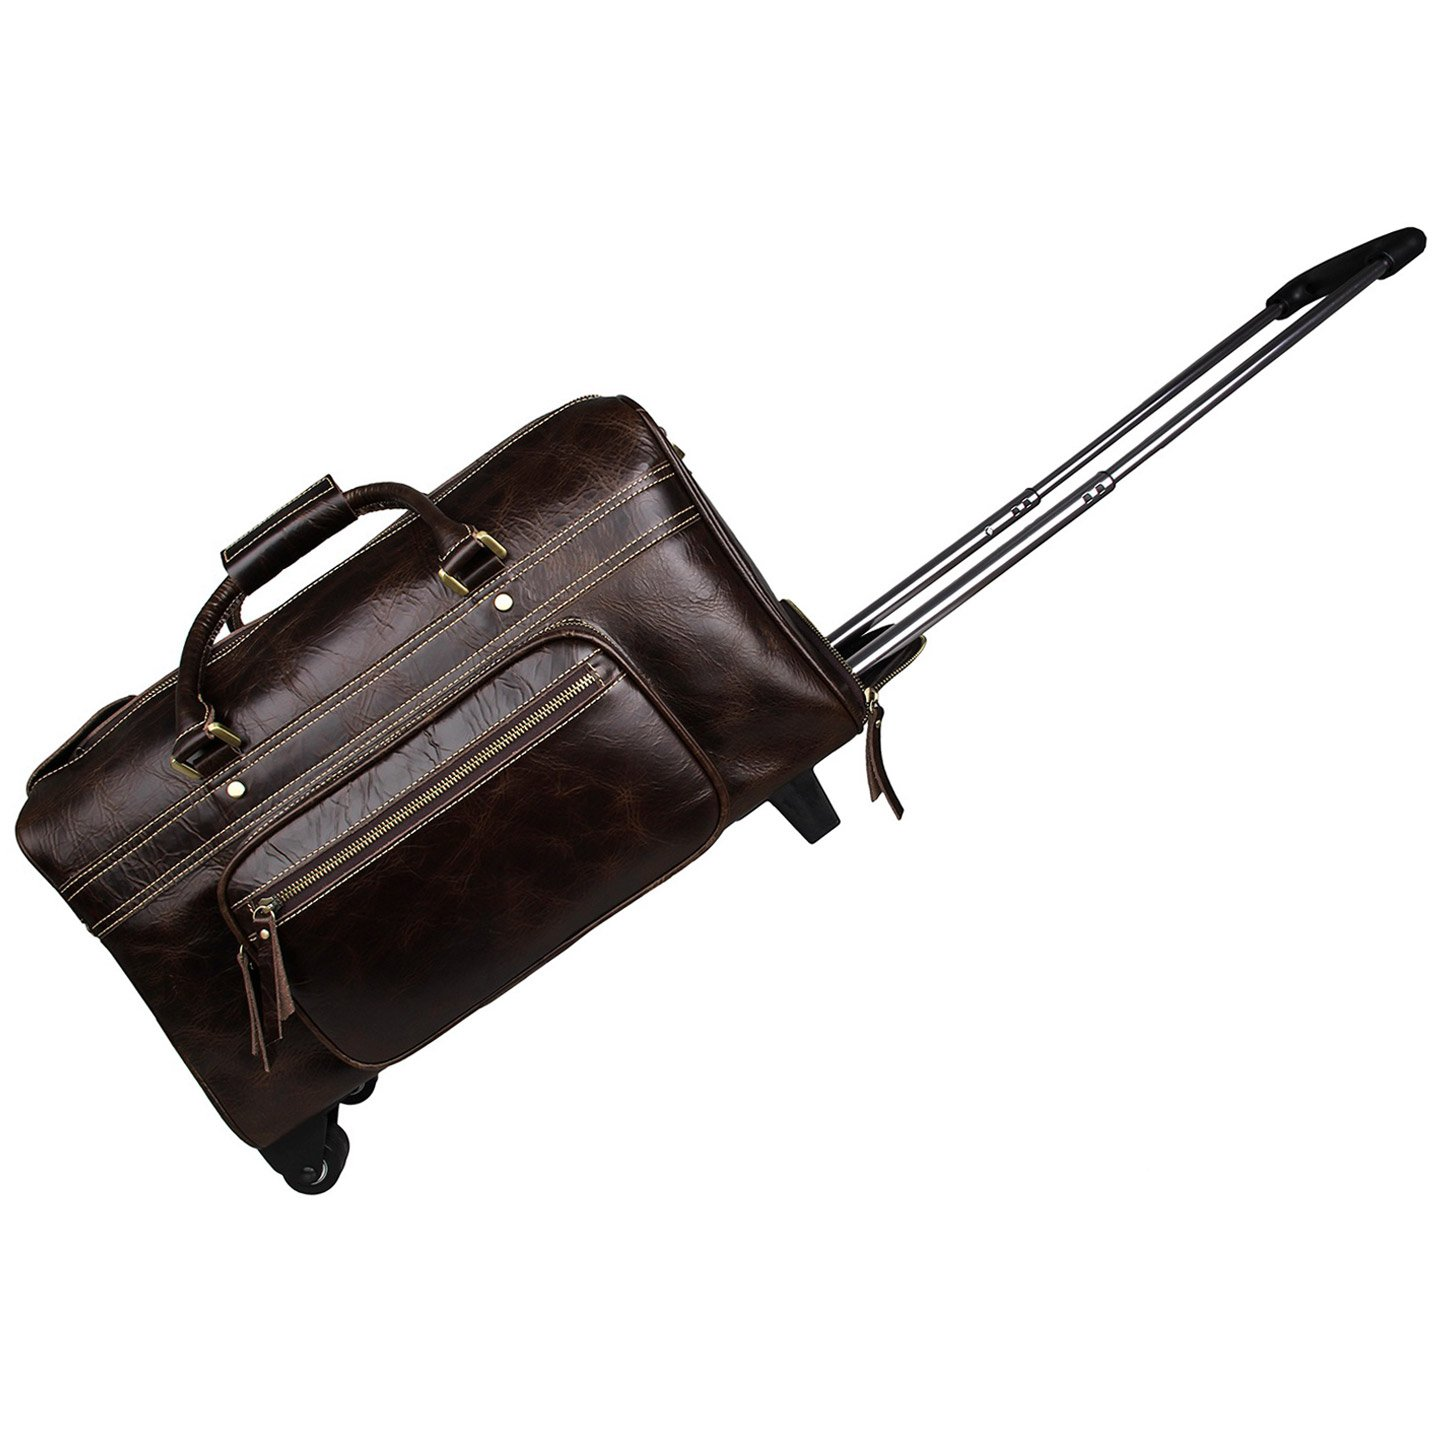 BAIGIO 18'' Carry-on Luggage Leather Travel Weekend Bag with Wheels Rolling Duffel